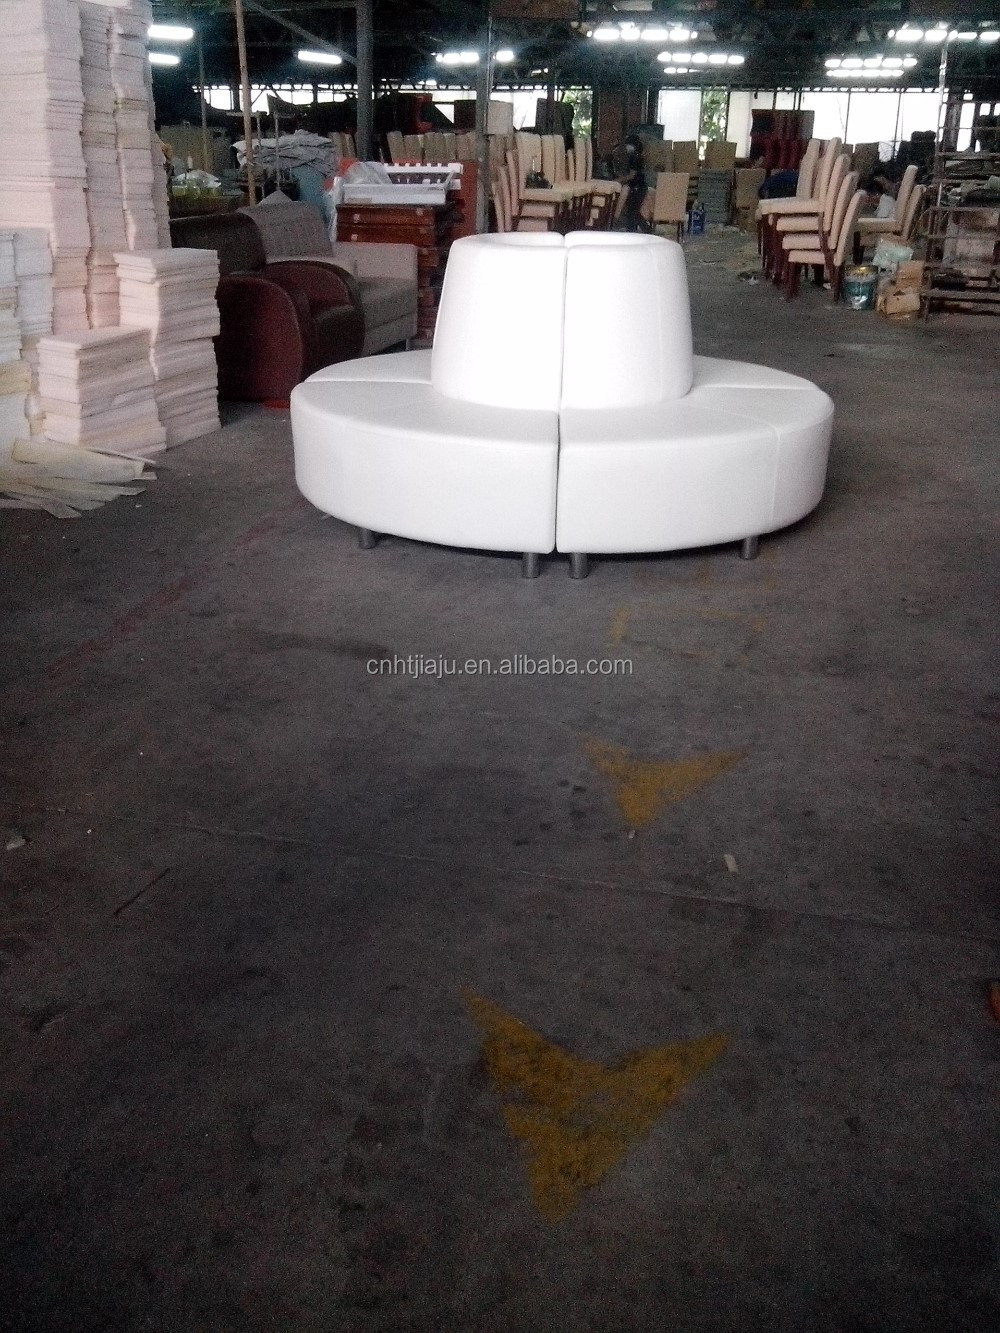 White Pu Sectional Round Sofa Buy White Leather Round